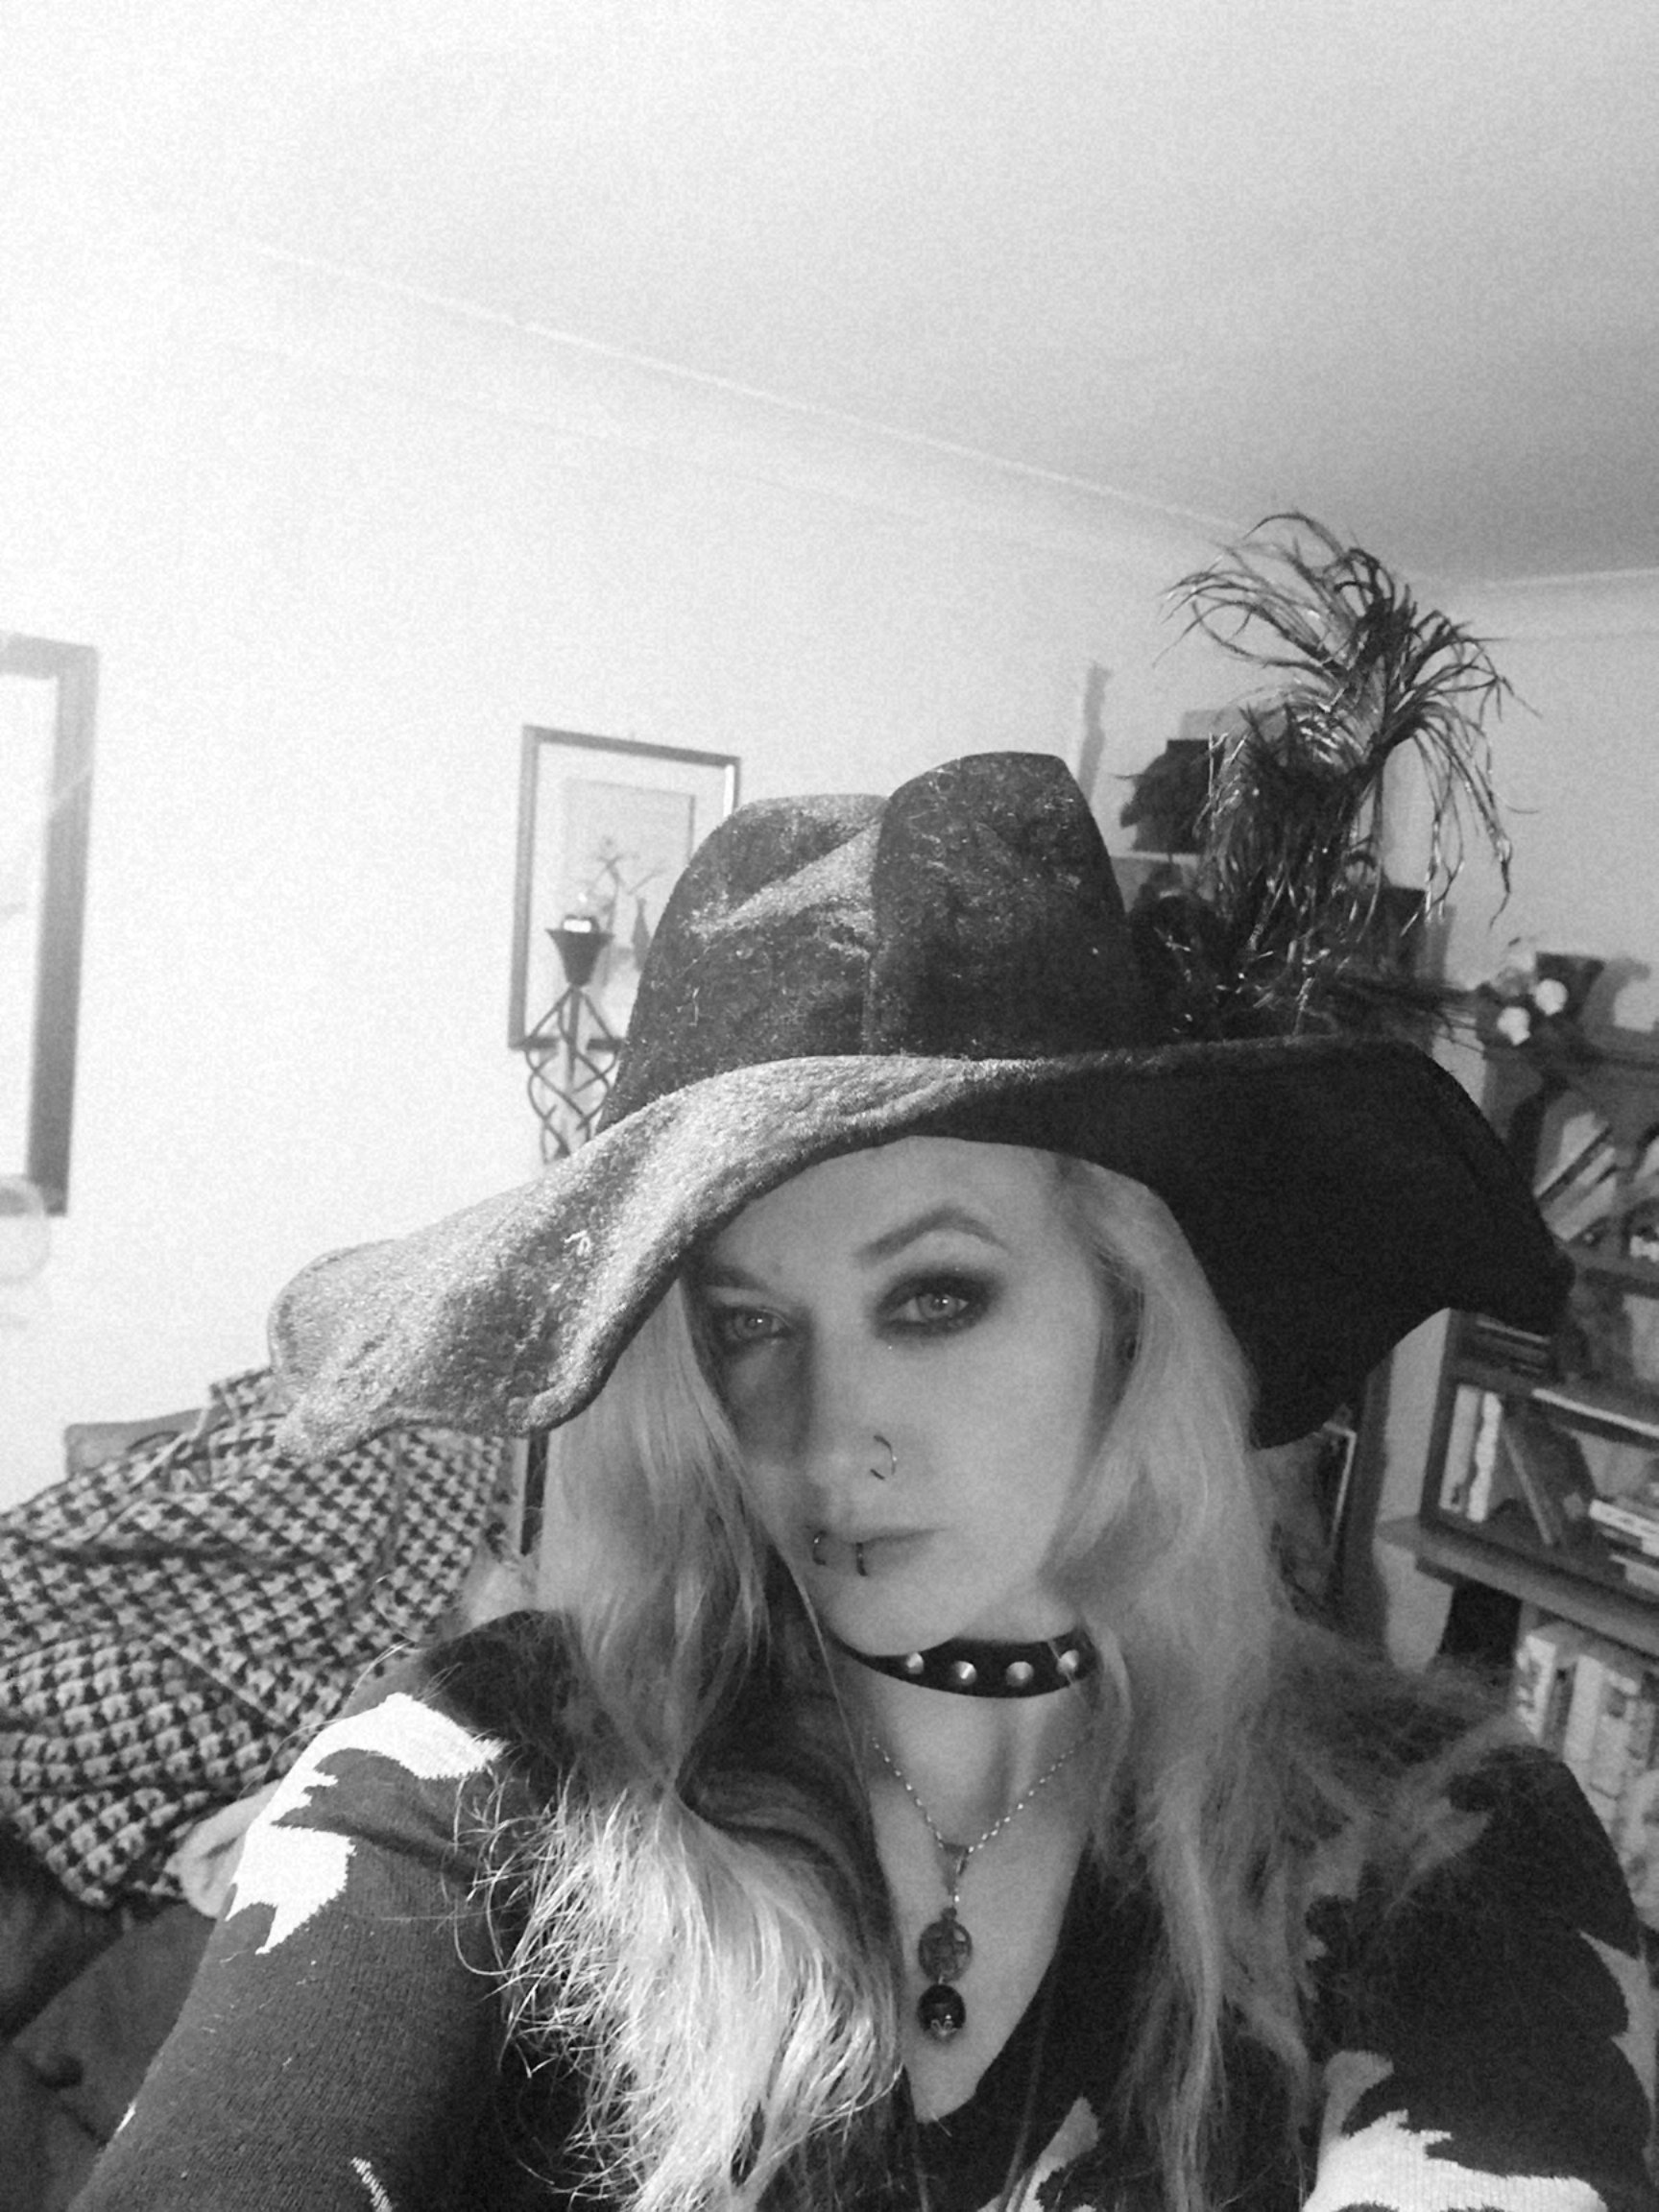 A woman wearing a witch hat